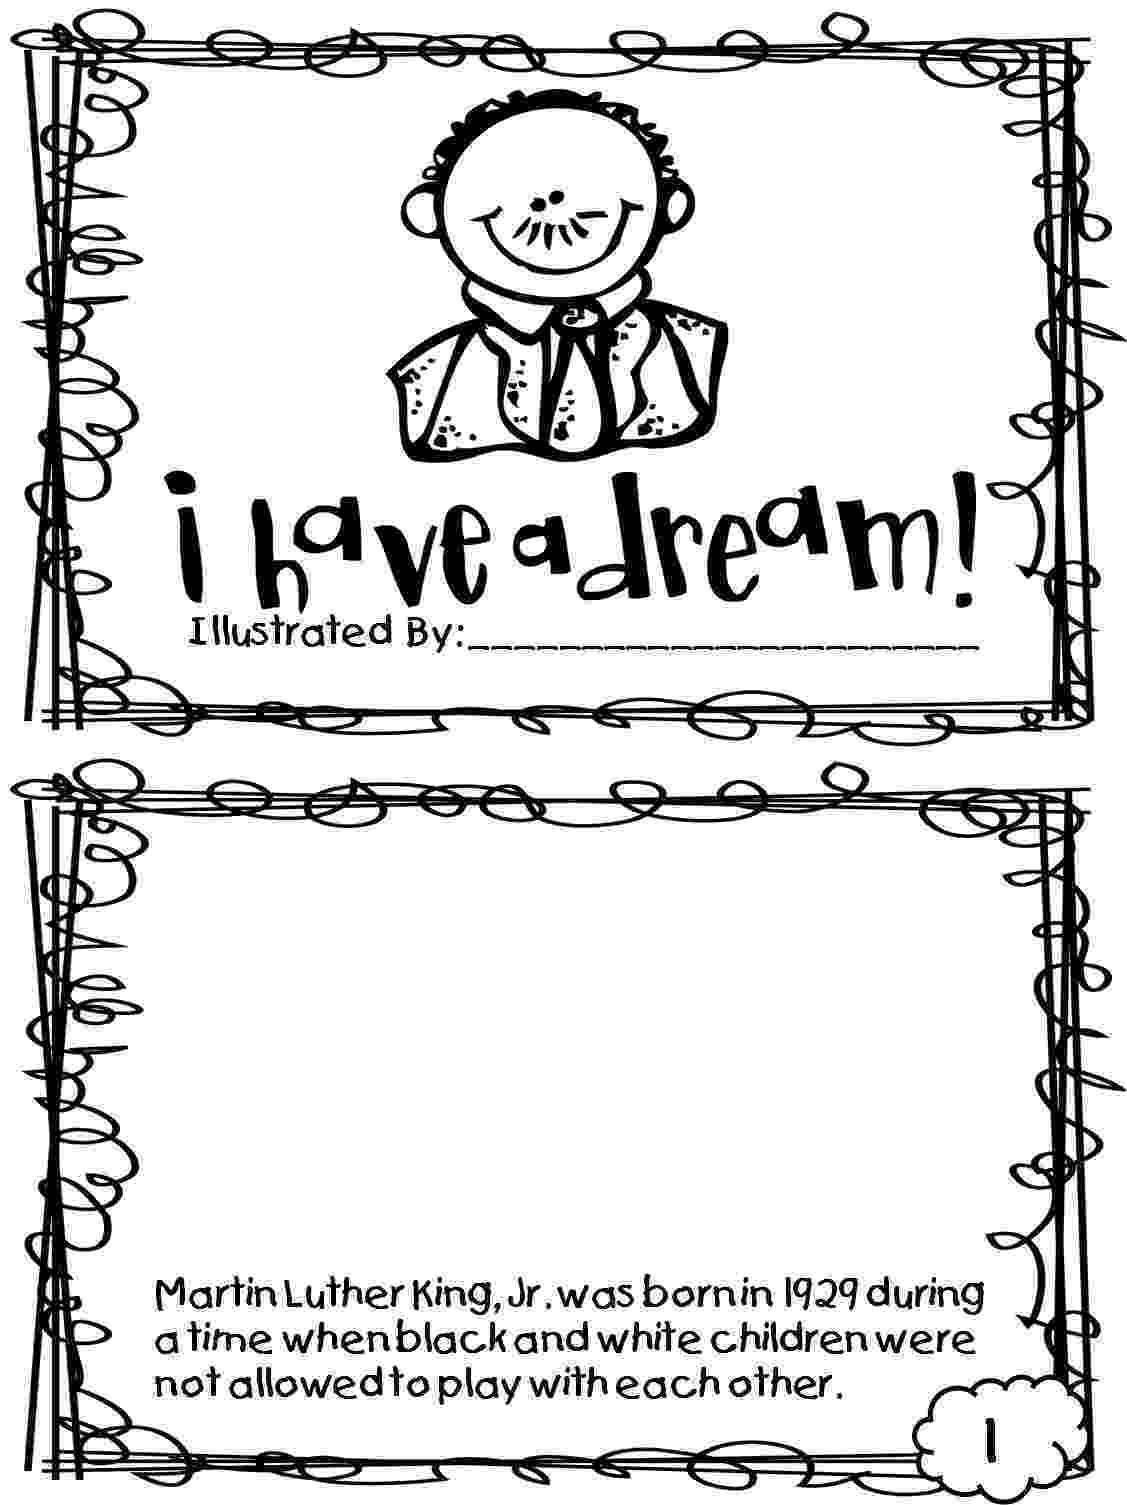 martin luther king jr coloring page martin luther king jr coloring page jr luther martin coloring king page